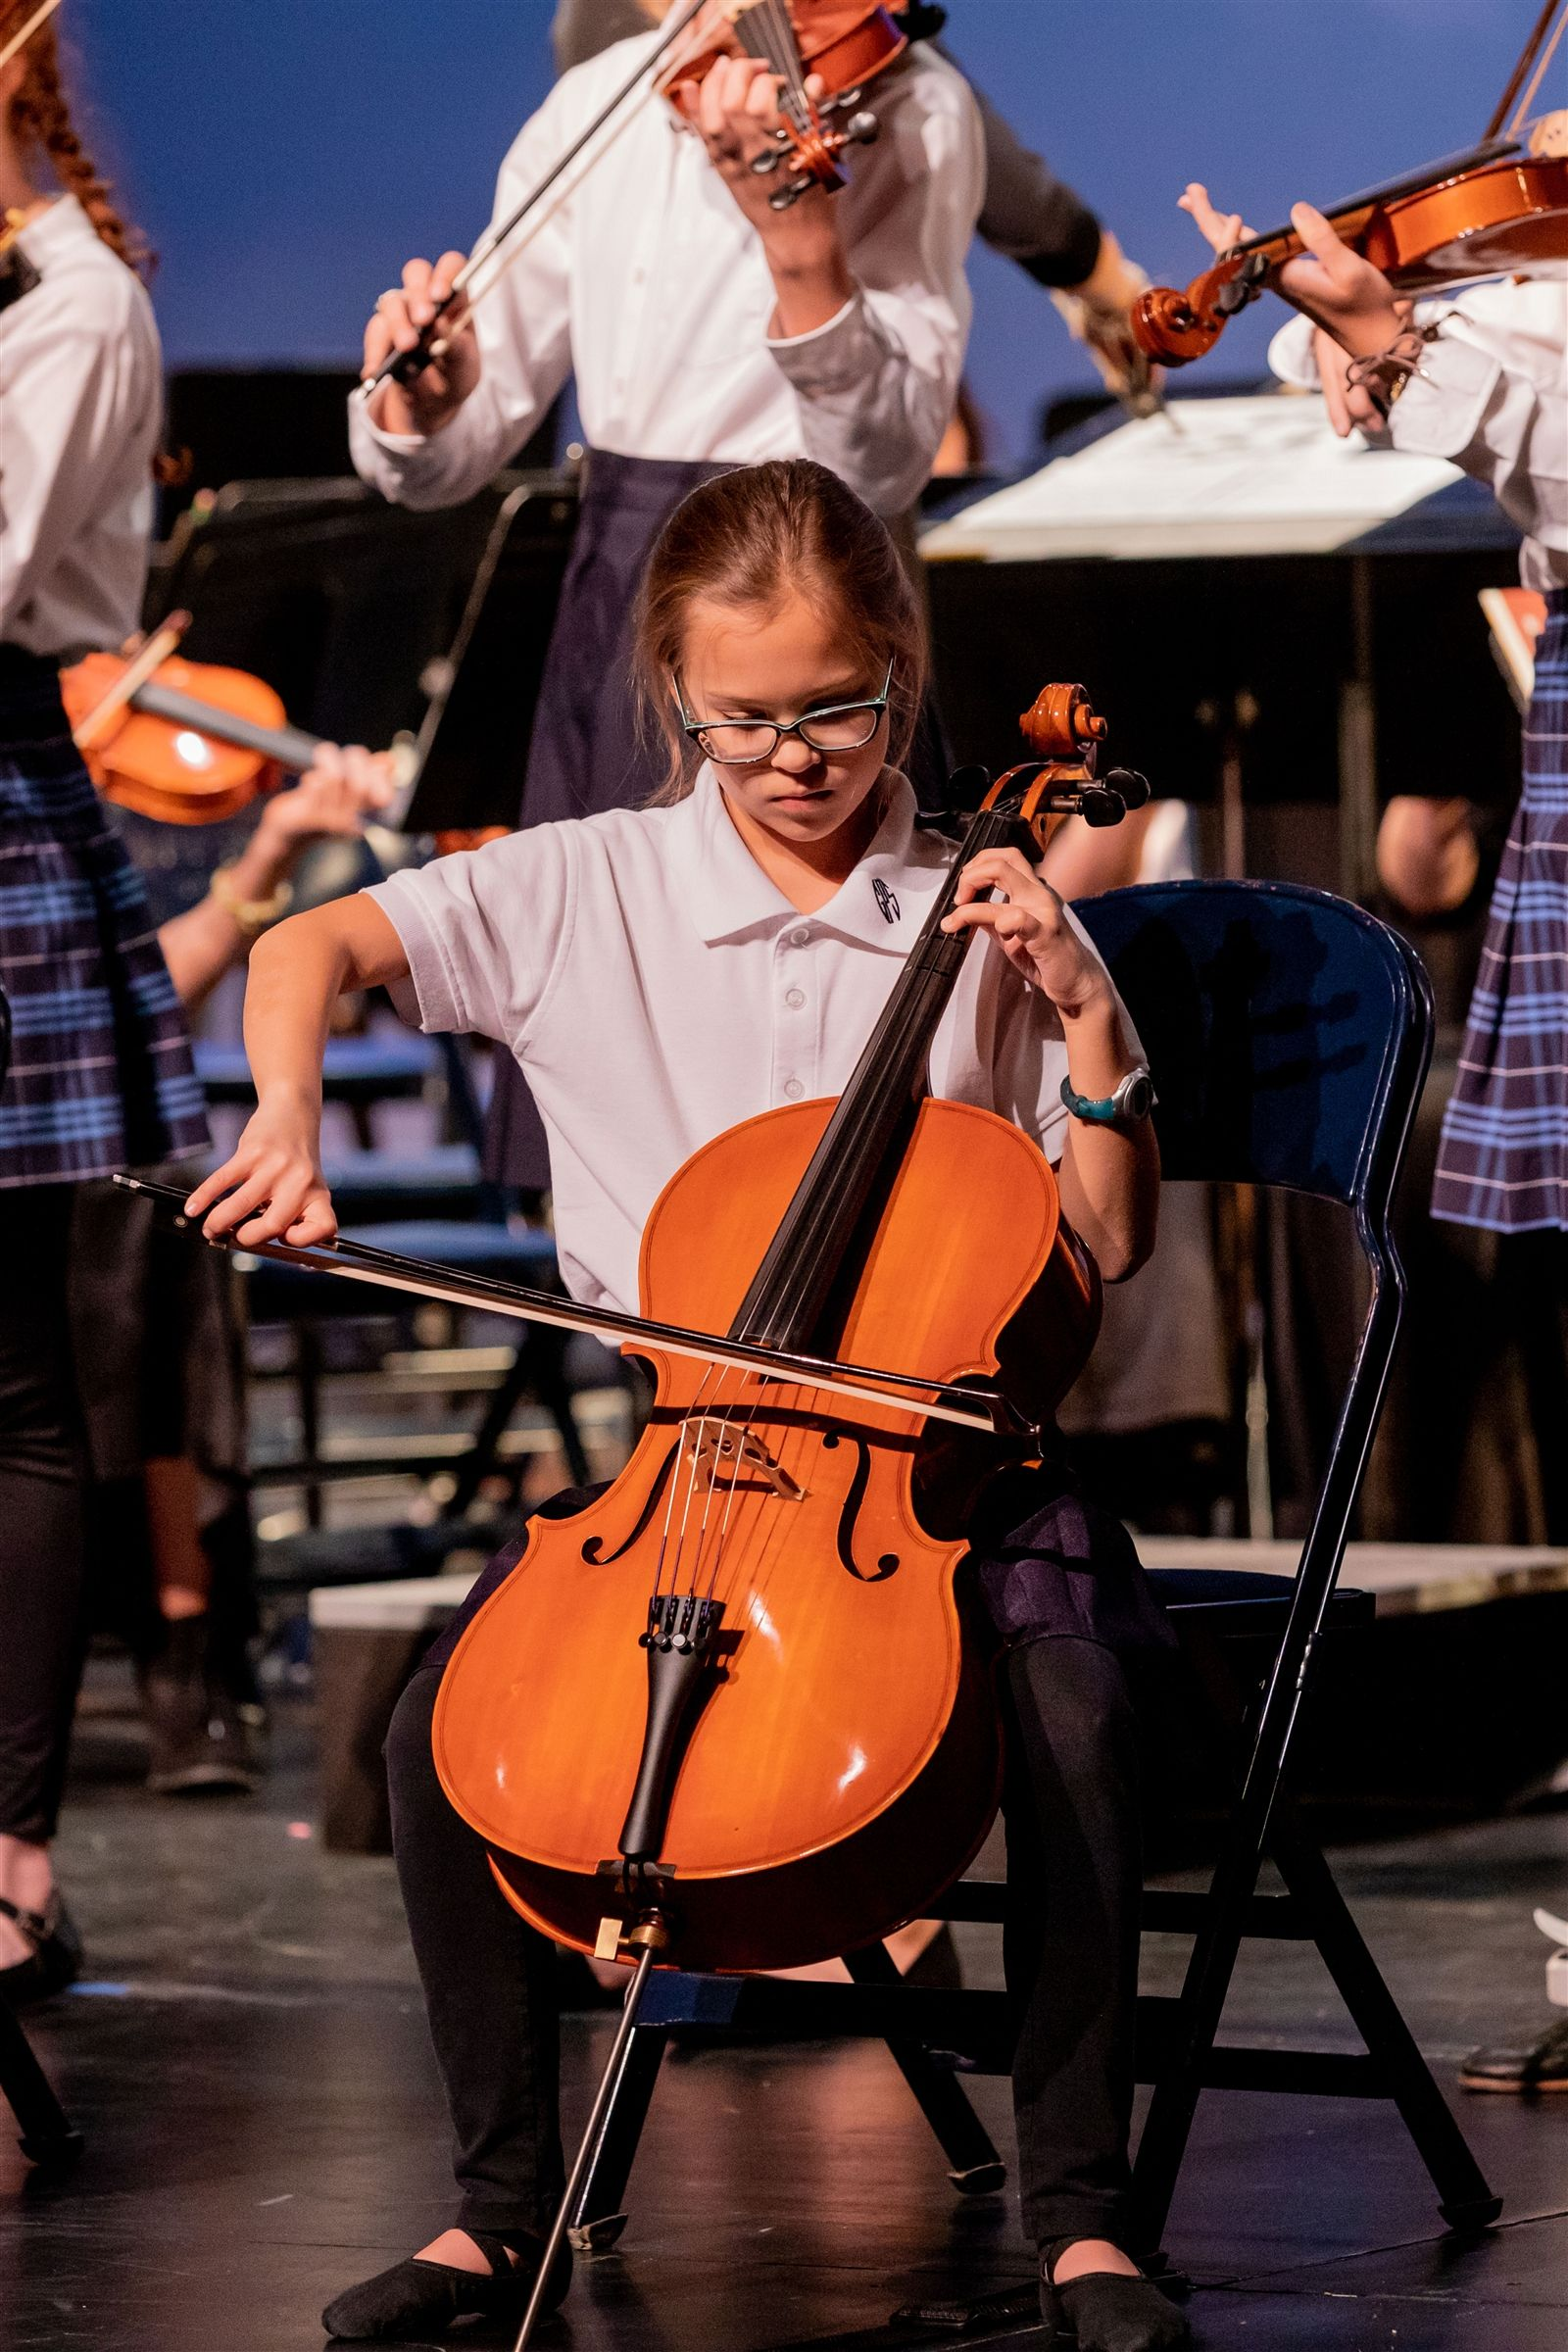 GPS student playing cello